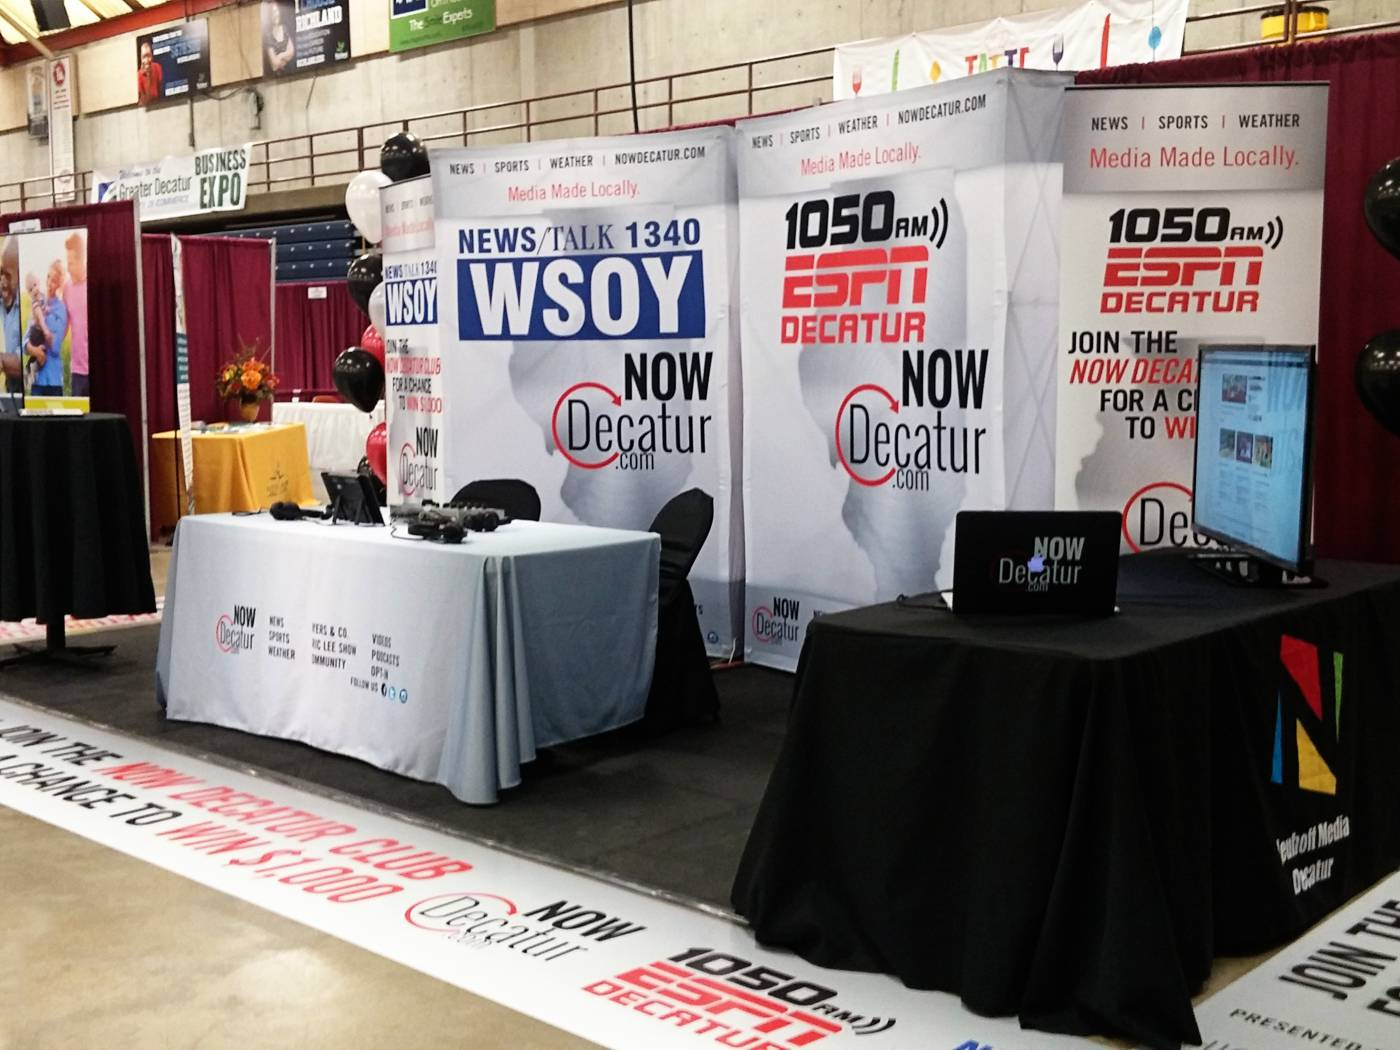 Tradeshow Display for NowDecatur WSOY - Decatur, IL